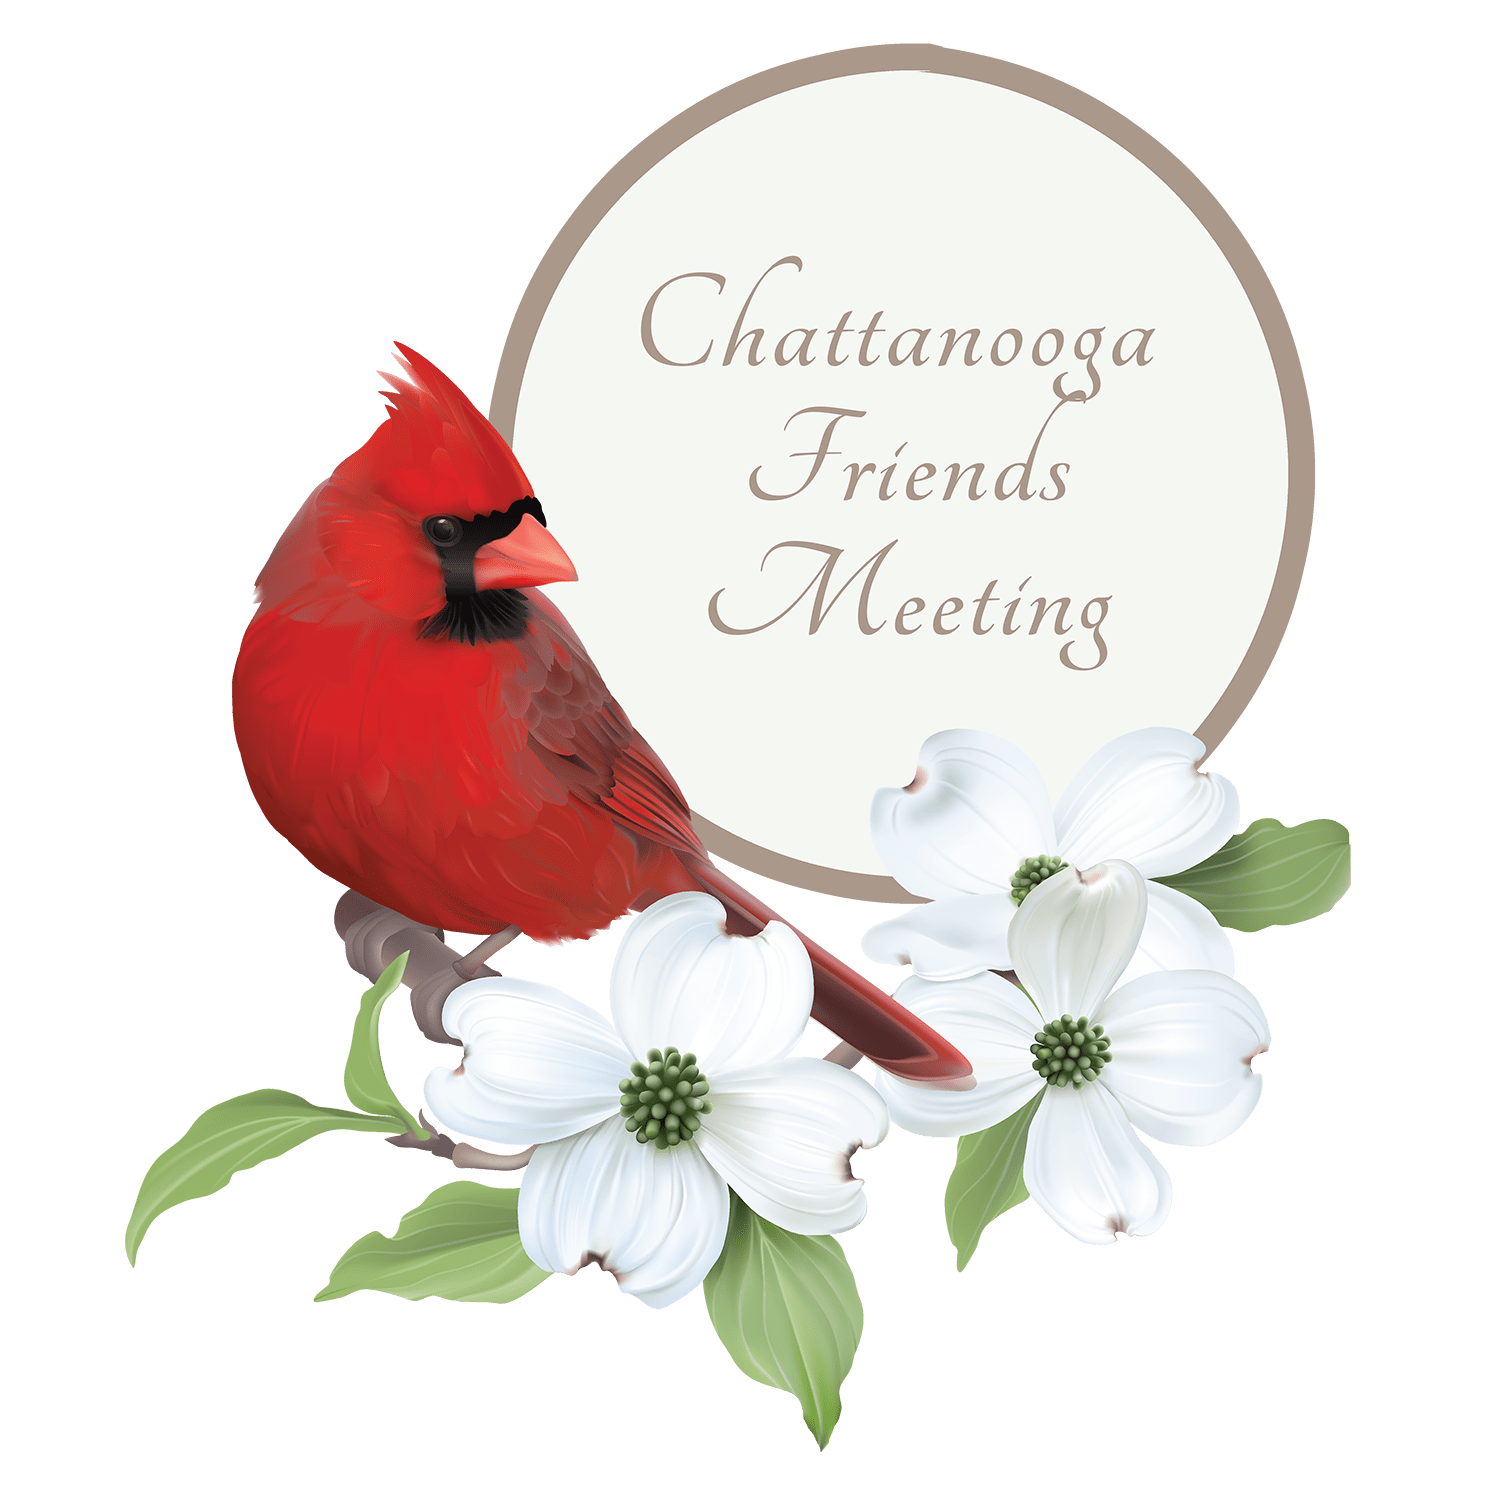 Chattanooga Friends Meeting